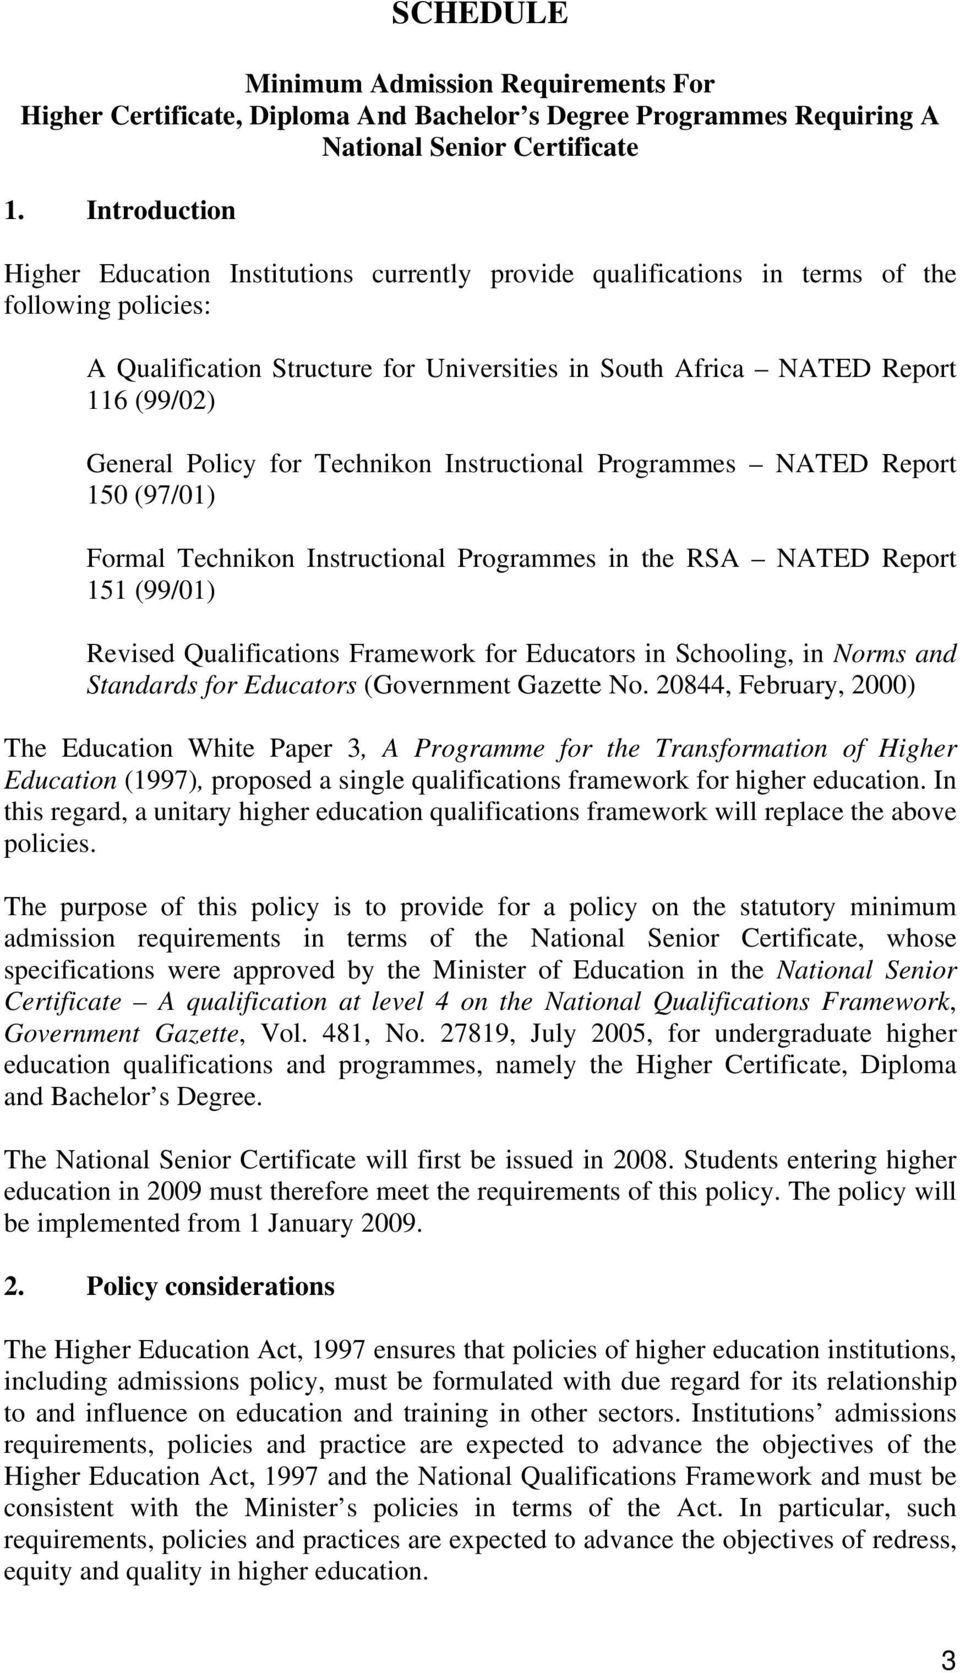 General Policy for Technikon Instructional Programmes NATED Report 150 (97/01) Formal Technikon Instructional Programmes in the RSA NATED Report 151 (99/01) Revised Qualifications Framework for